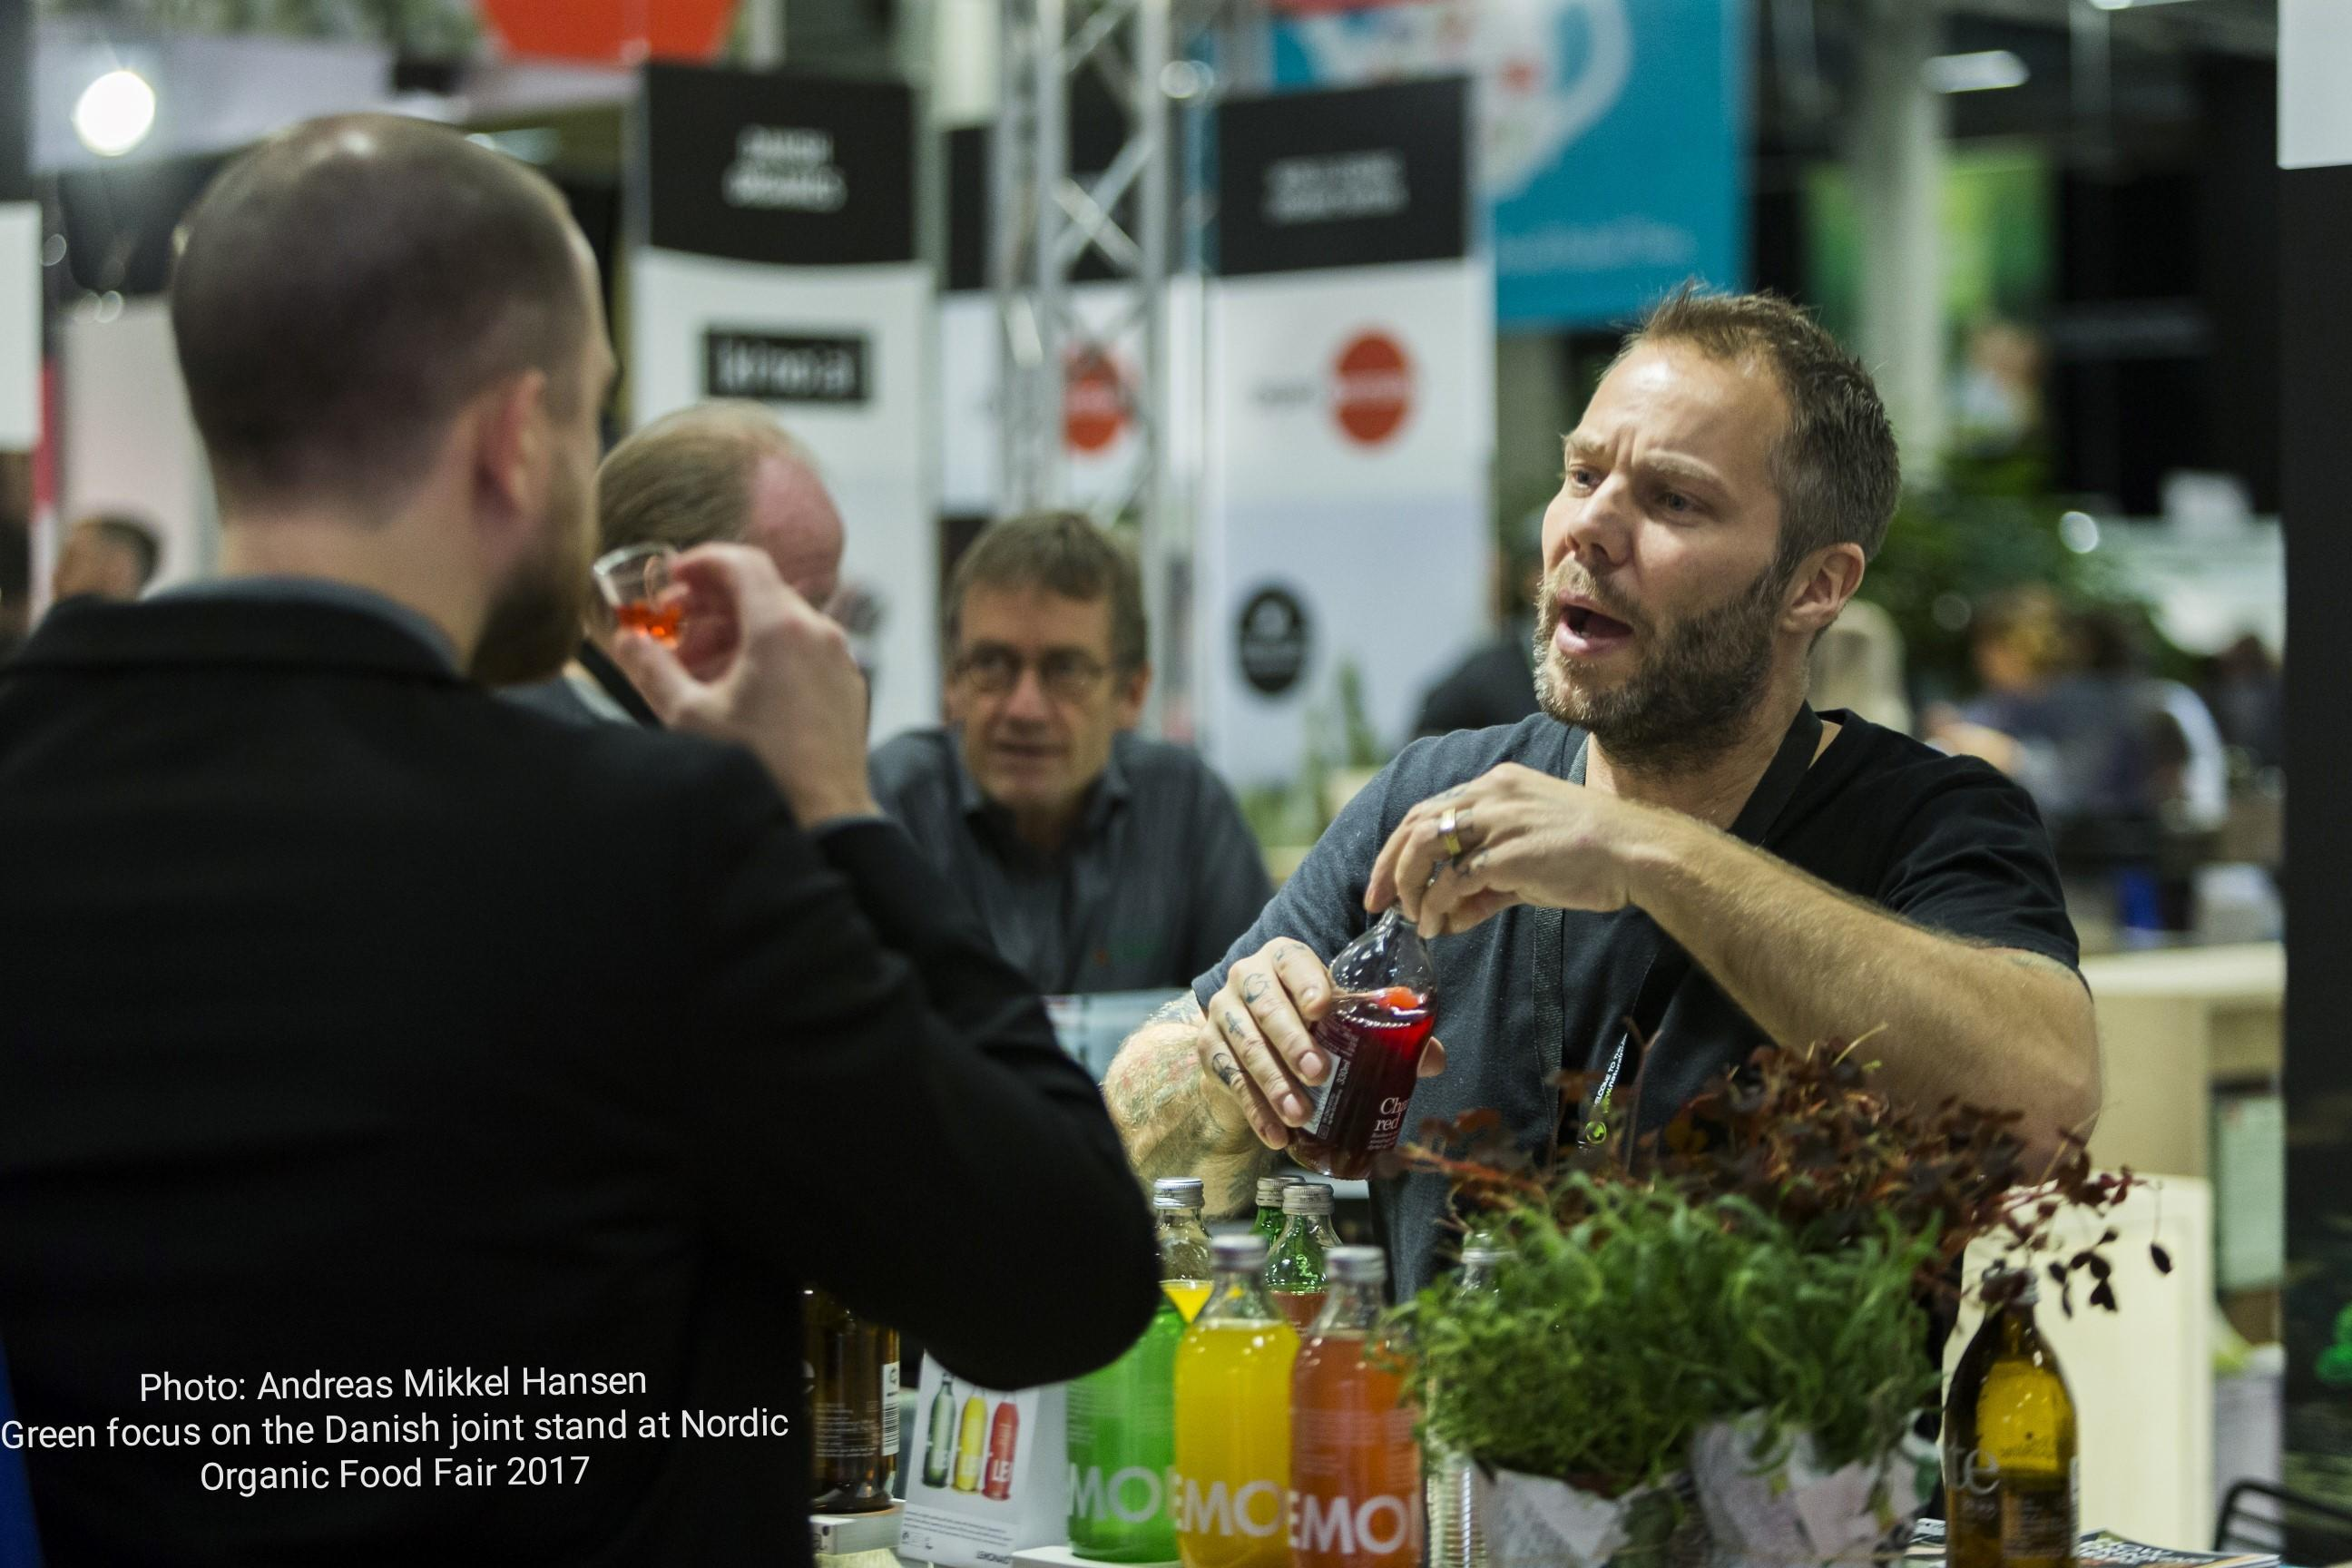 "<h3 class=""headline-height"">NORDIC ORGANIC FOOD FAIR</h3><div class=""box-height"">Nordic Organic Food Fair is a two-day event that takes place on 13-14 November 2019 in Malmö, Sweden. It is a smaller organic fair with approximately 5.000 visitors from retail, wholesale and foodservice. Also, in 2019 Organic Denmark participates in Nordic Organic Food Fair hosting the joint stand for Danish companies. </div>"